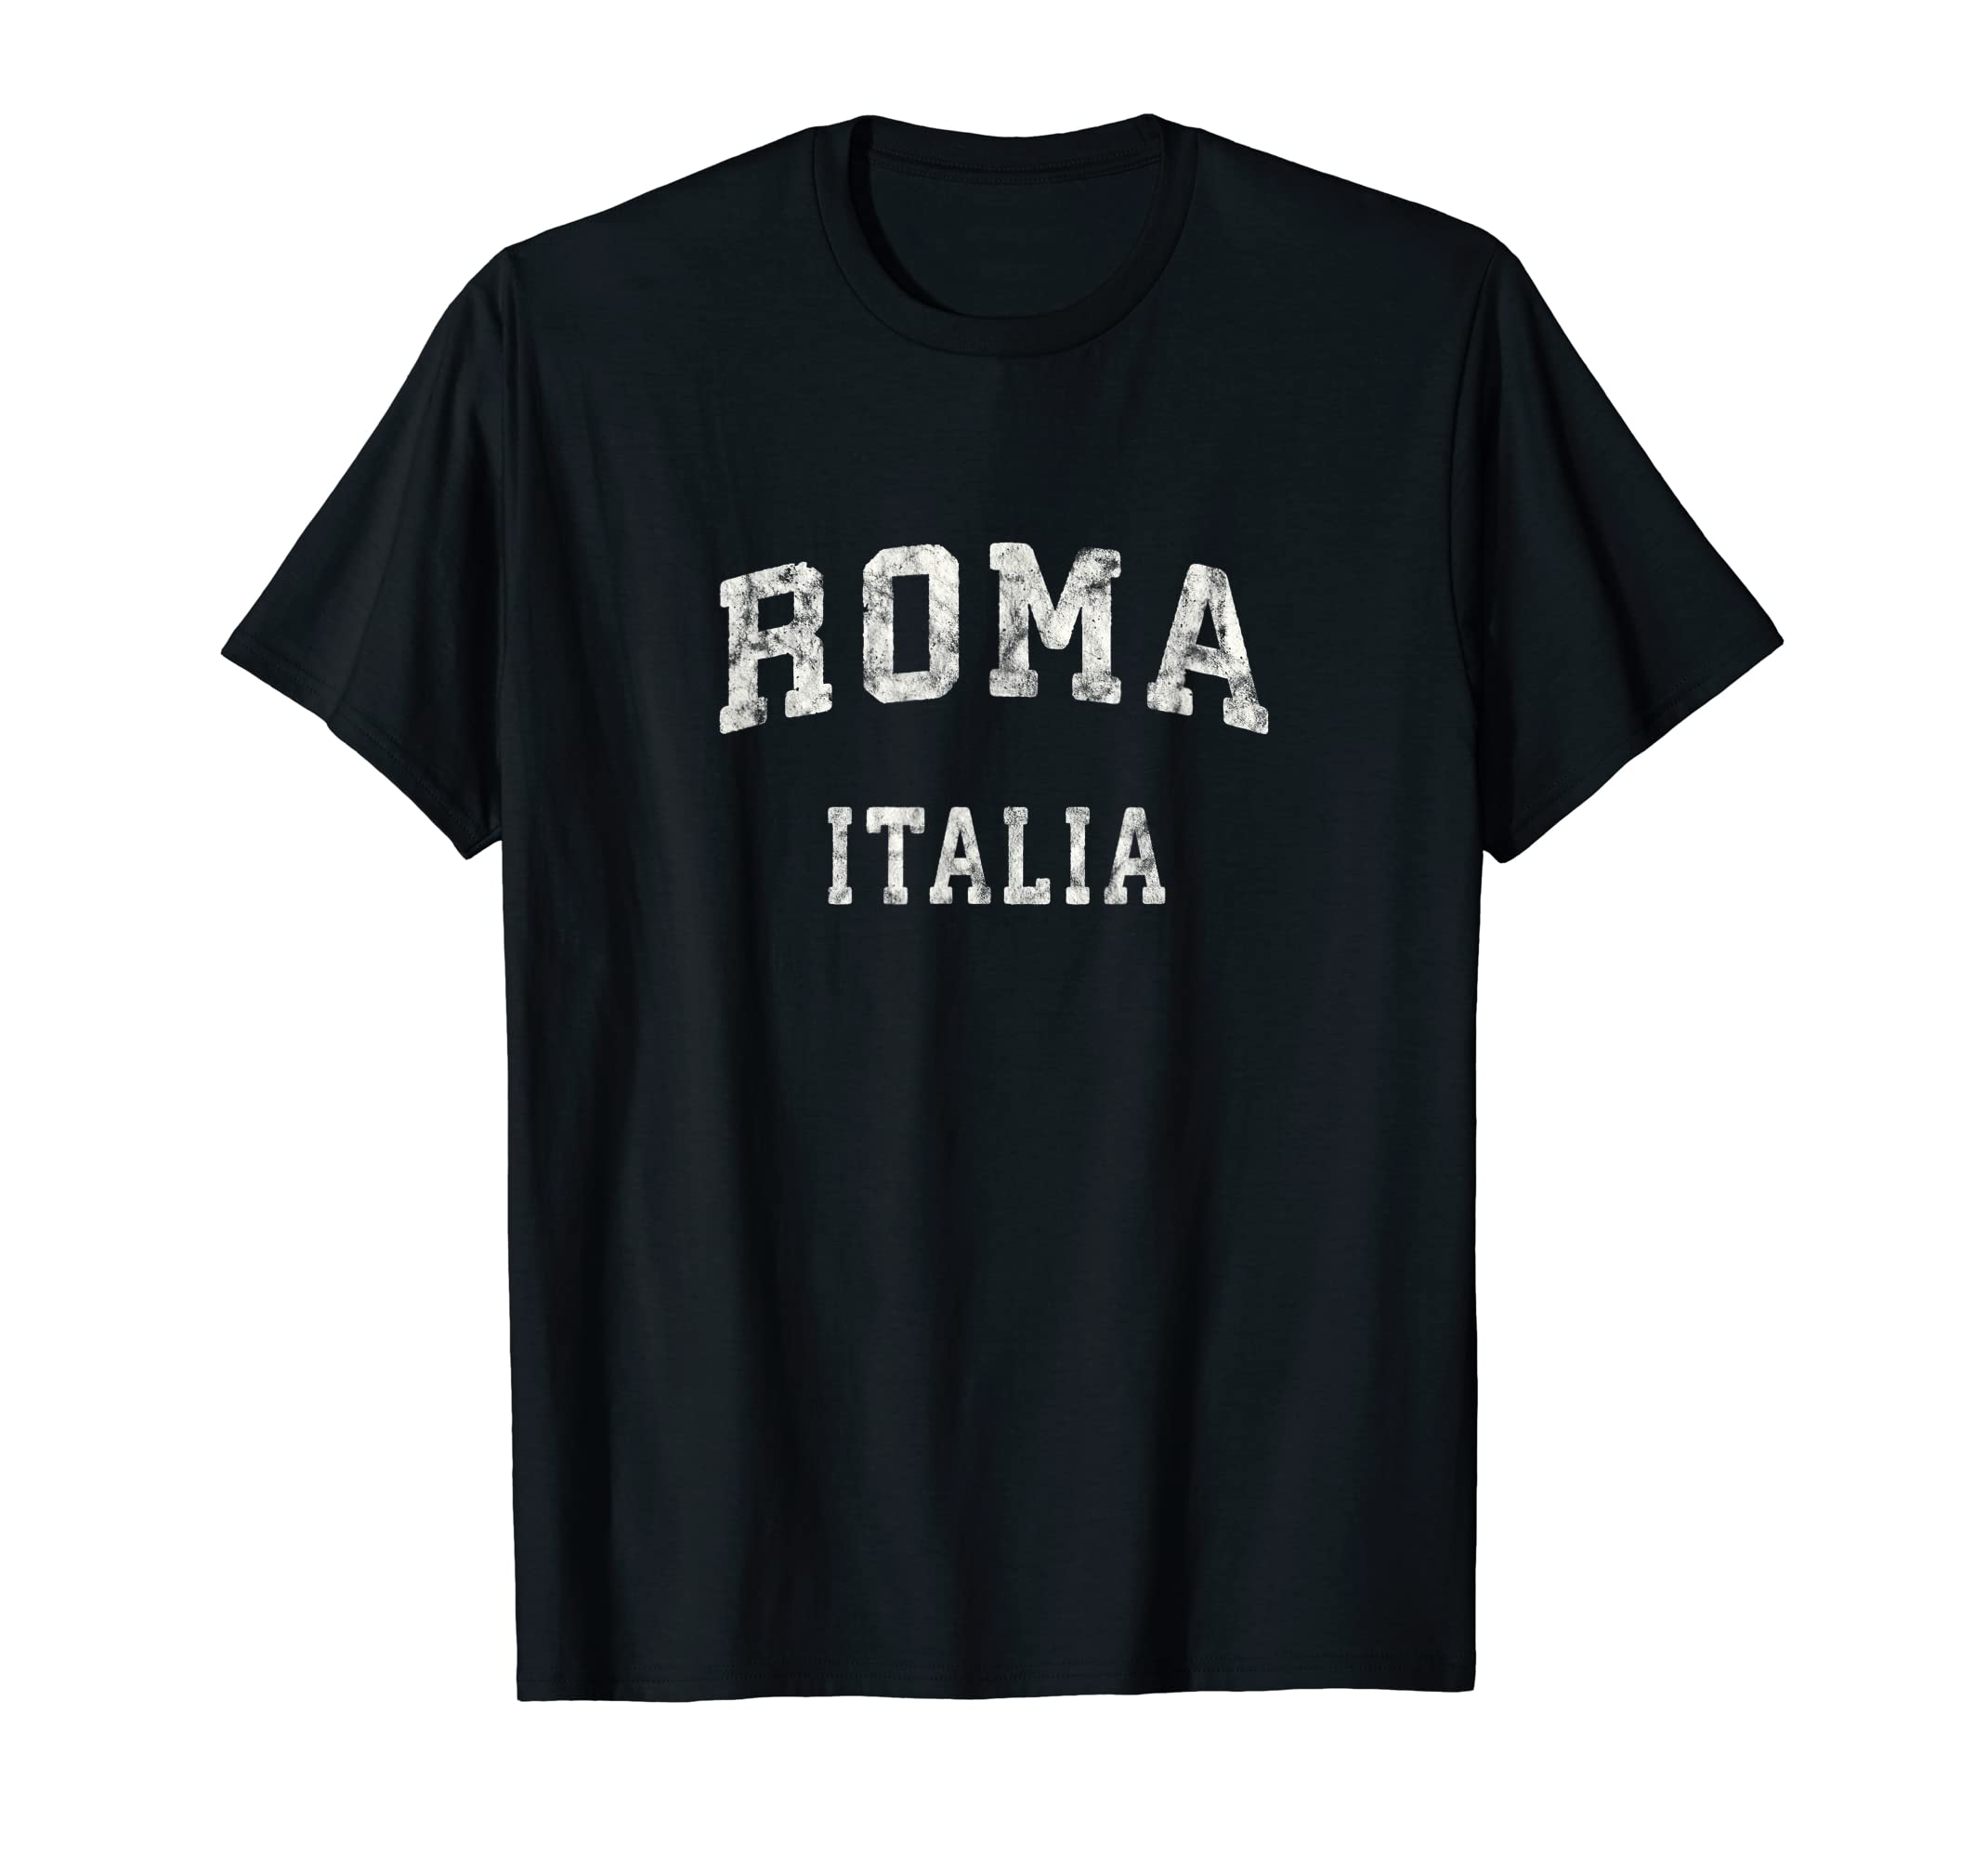 Rome Italy T-Shirt Vintage Roma Italia Sports Design Tee-Men's T-Shirt-Black